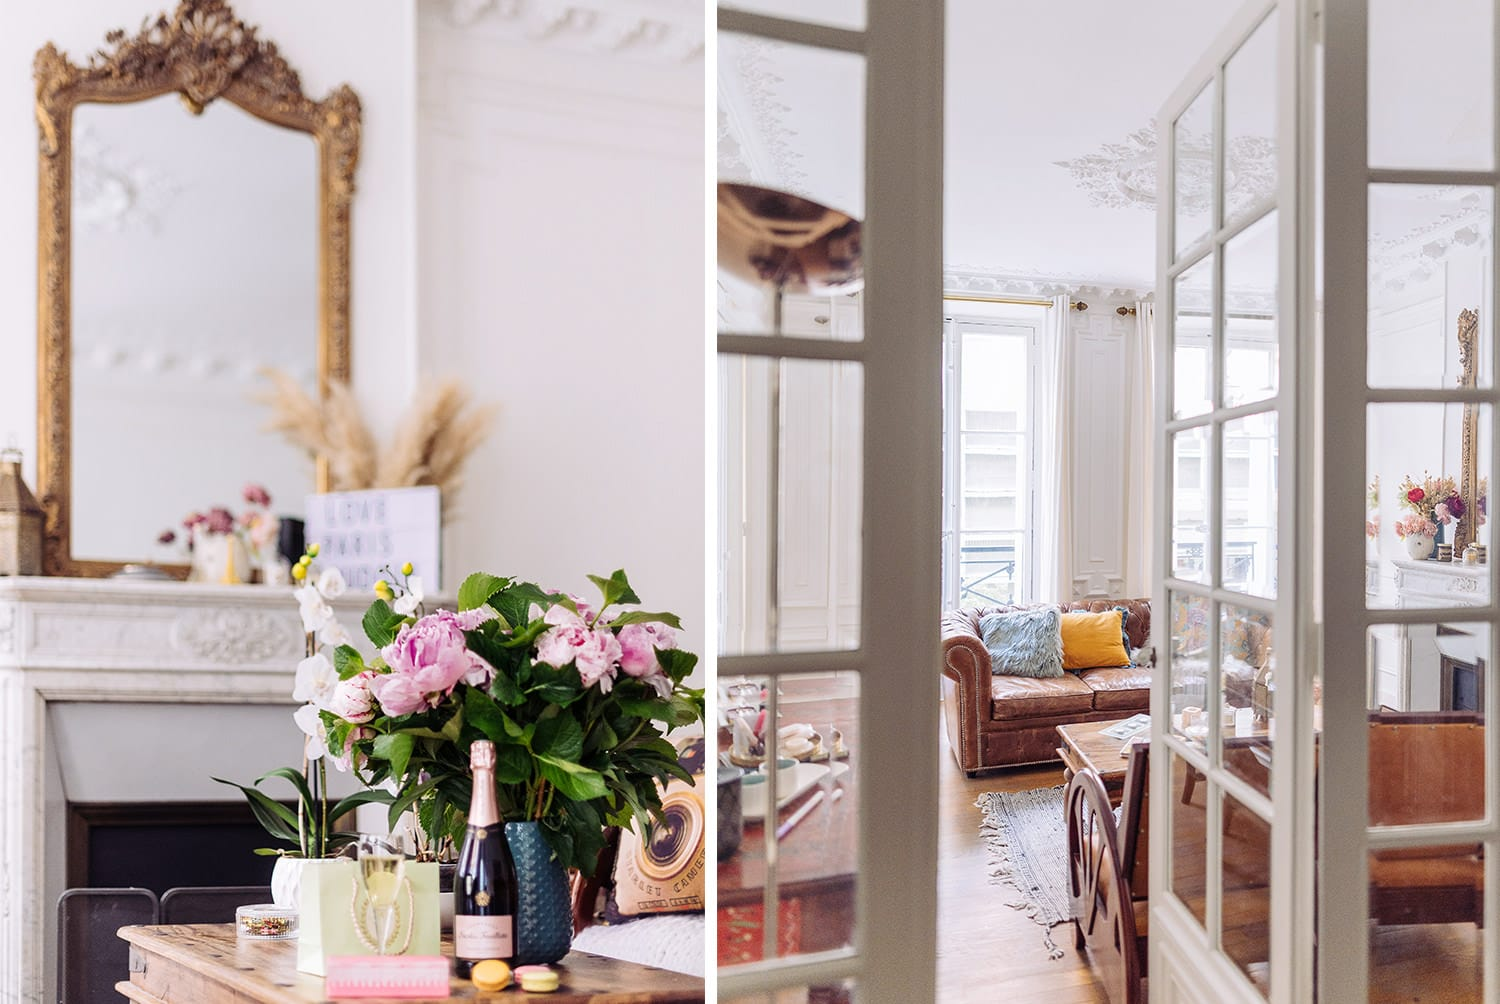 gloria villa paris boudoir photography  studio in the middle of le Marais with antique mirror, marble fire place and french doors